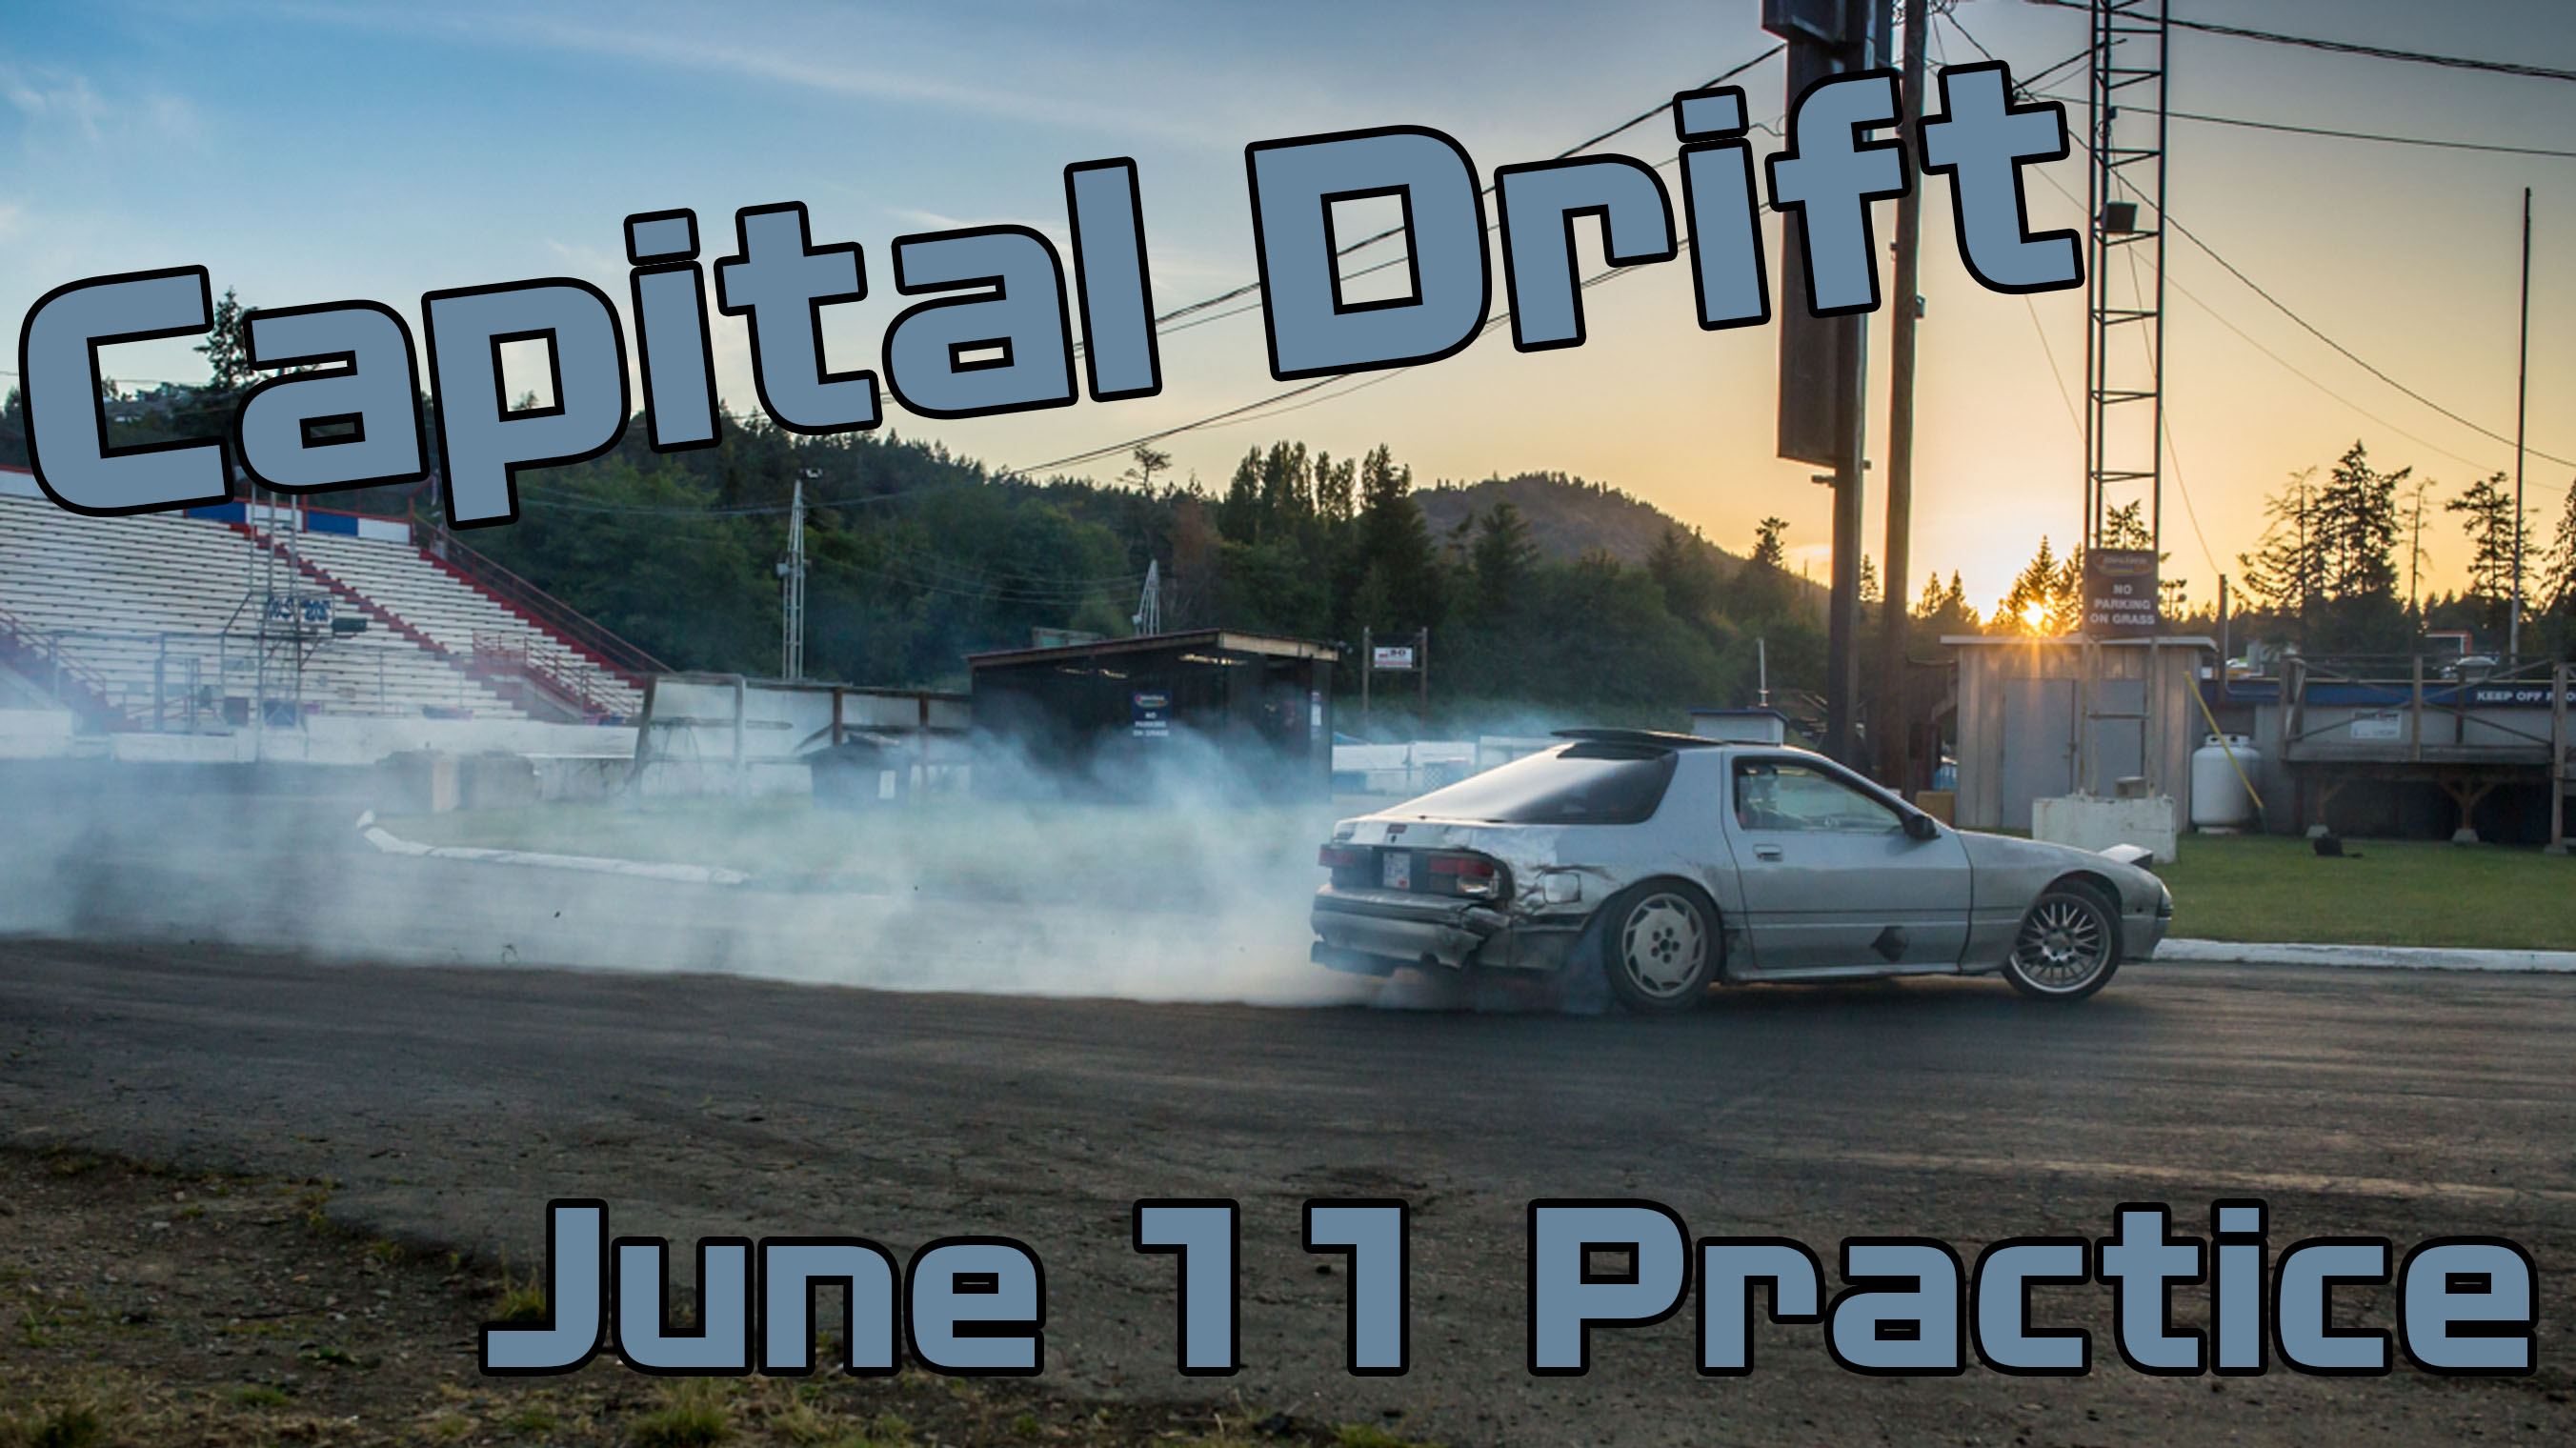 Capital Drift June Practice